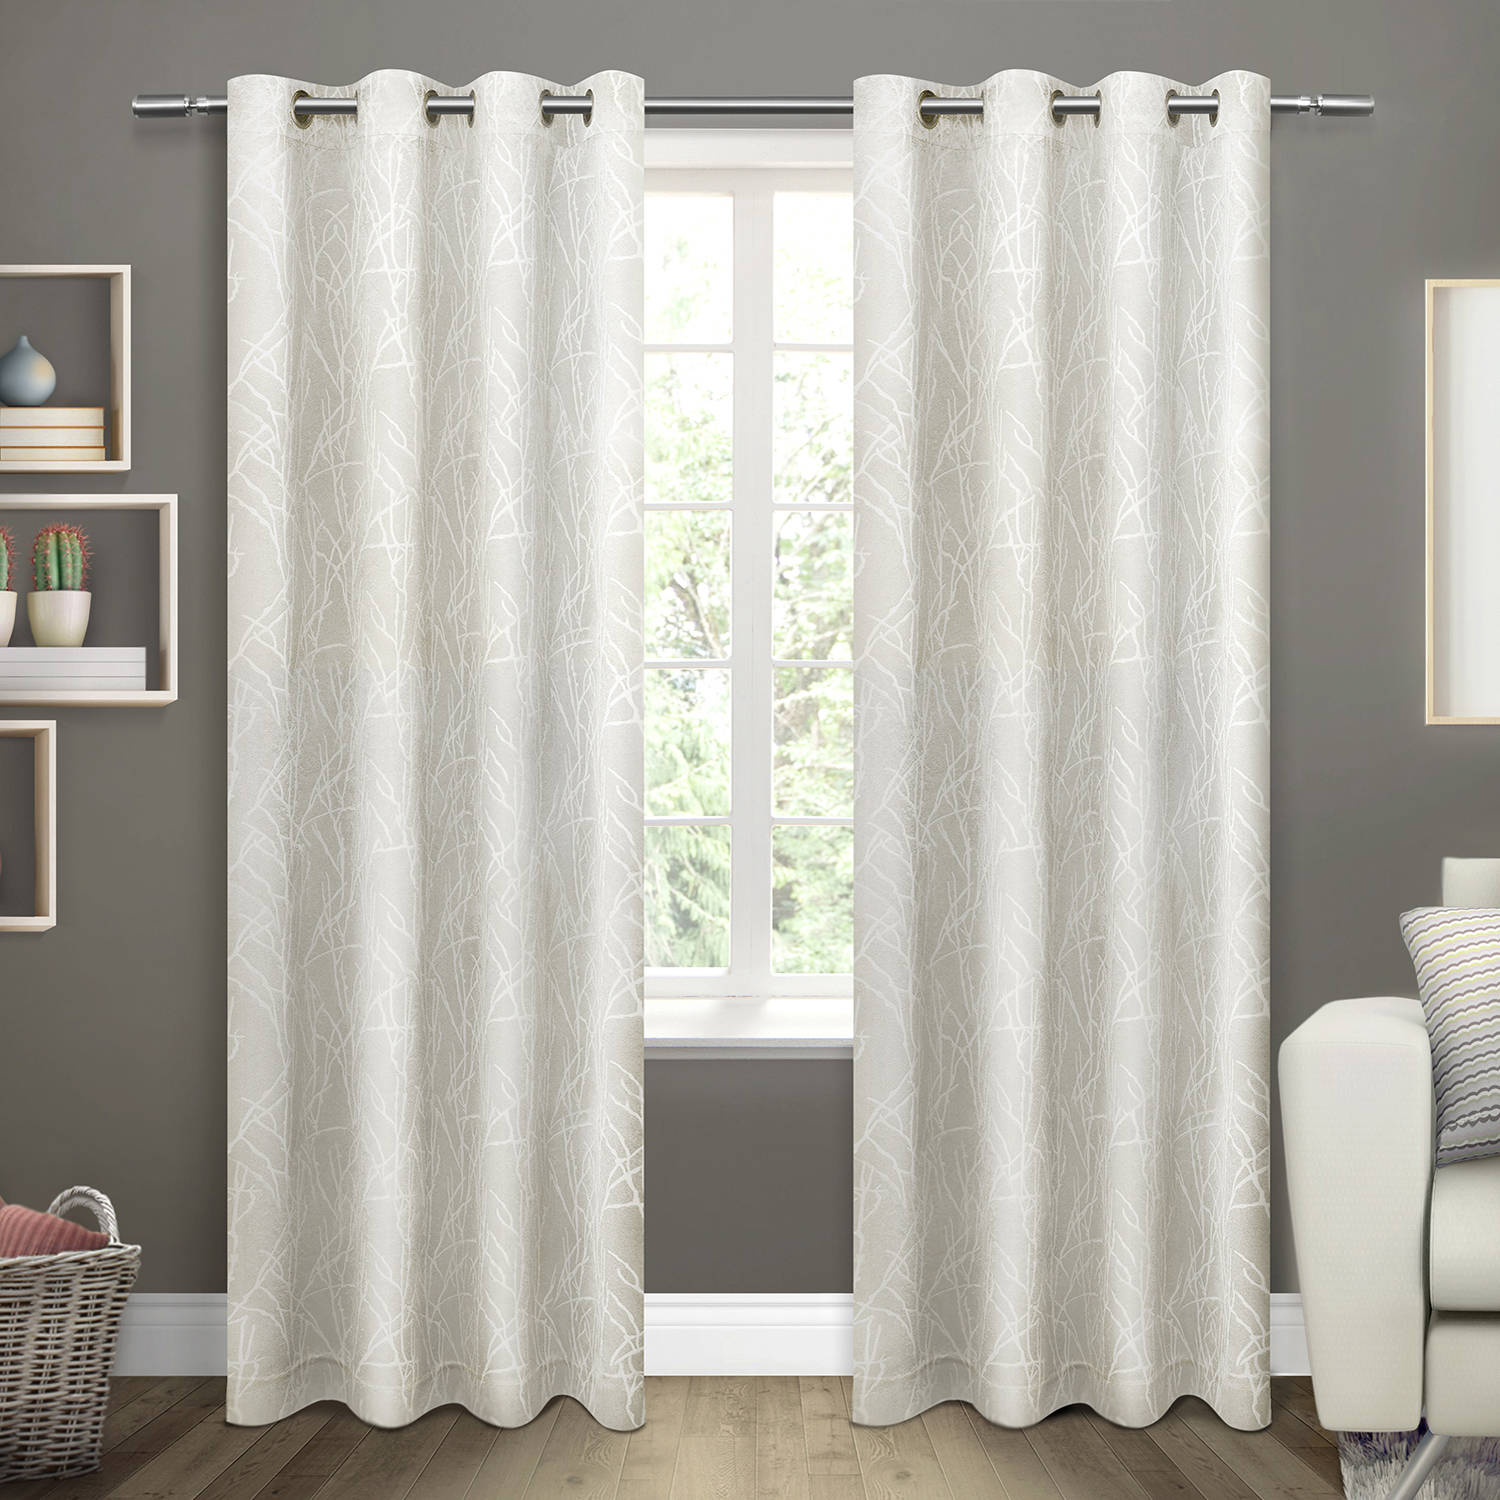 "Twig Insulated Woven Blackout Grommet Top Window Curtain Panels, Vanilla, Set of 2, 54"" x 84"""